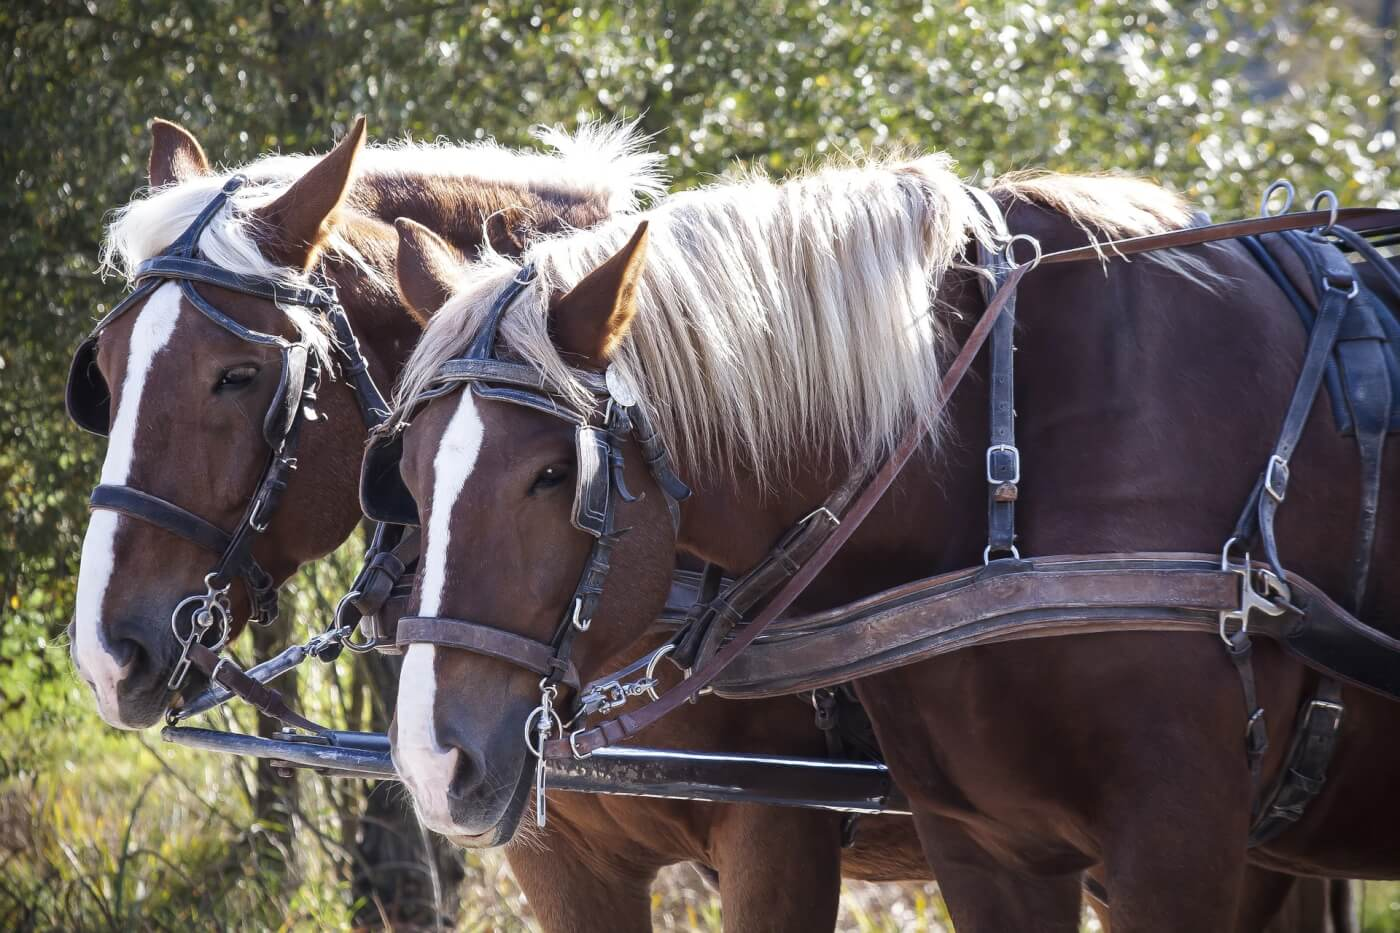 2020: Chicago Bans Horse-Drawn Carriage Rides